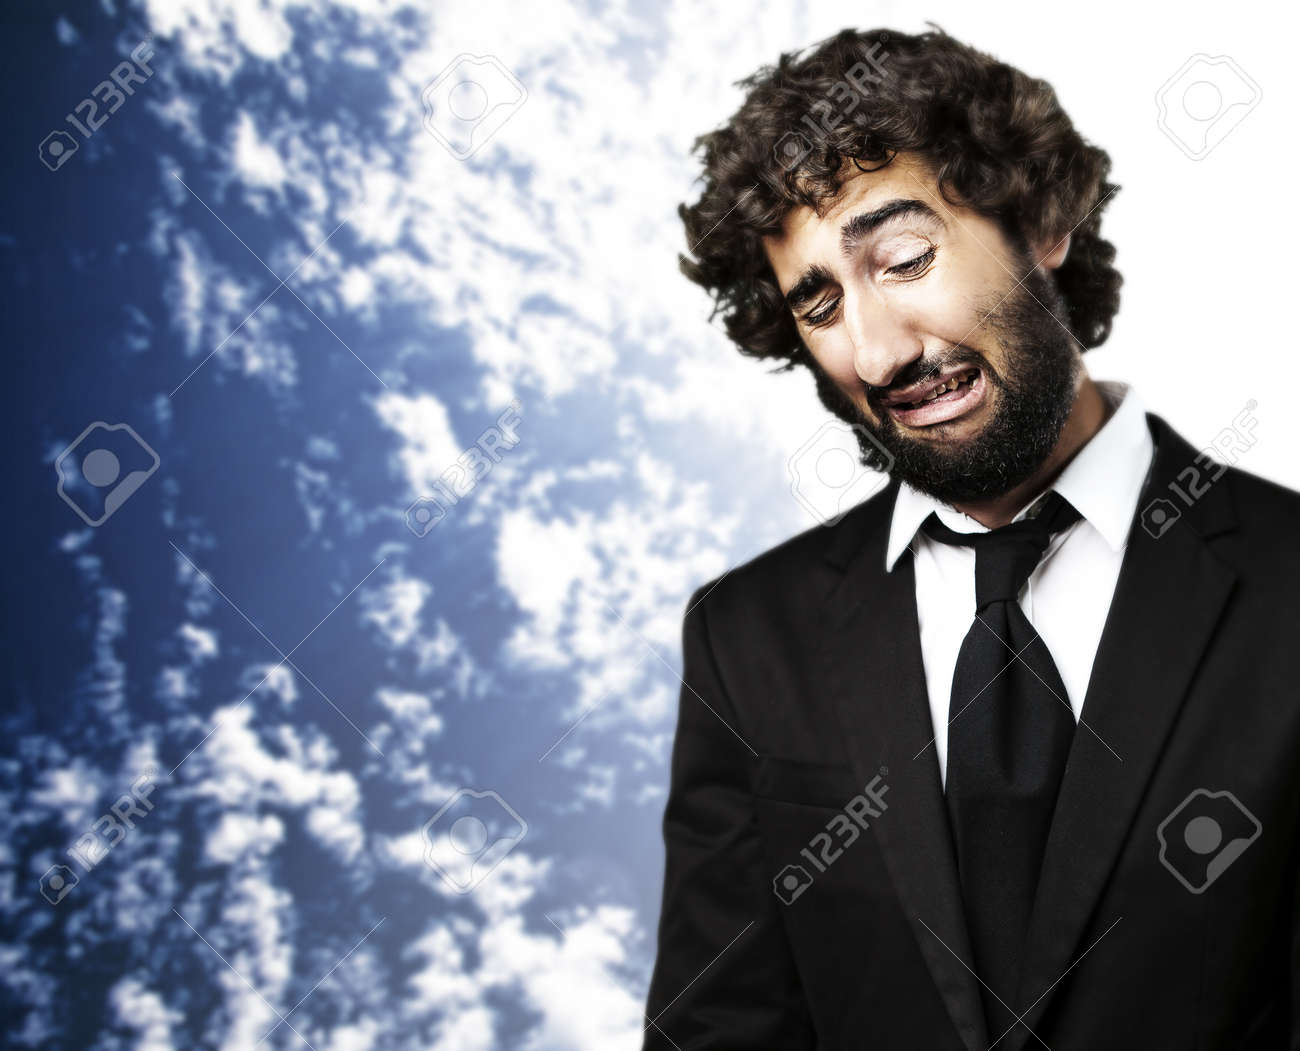 portrait of young business man with suit crying against a blue sky background Stock Photo - 12656757